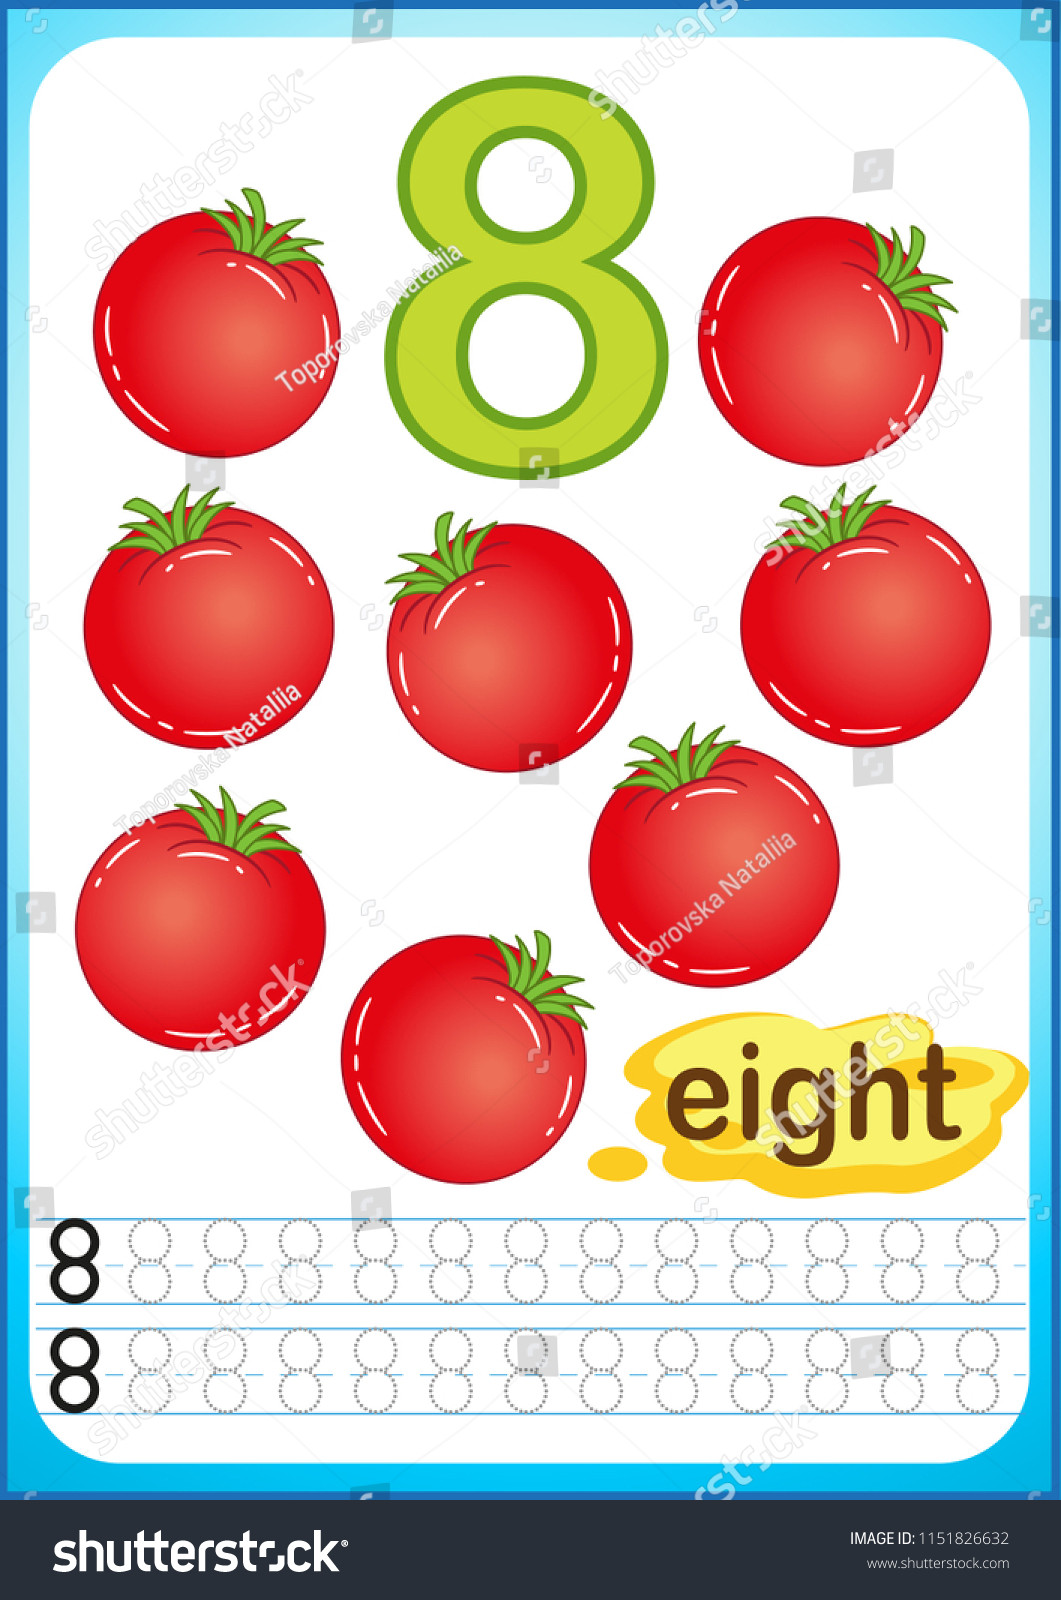 Preschool Fruits and Vegetables Worksheets Printable Worksheet Kindergarten Preschool Exercises Writing